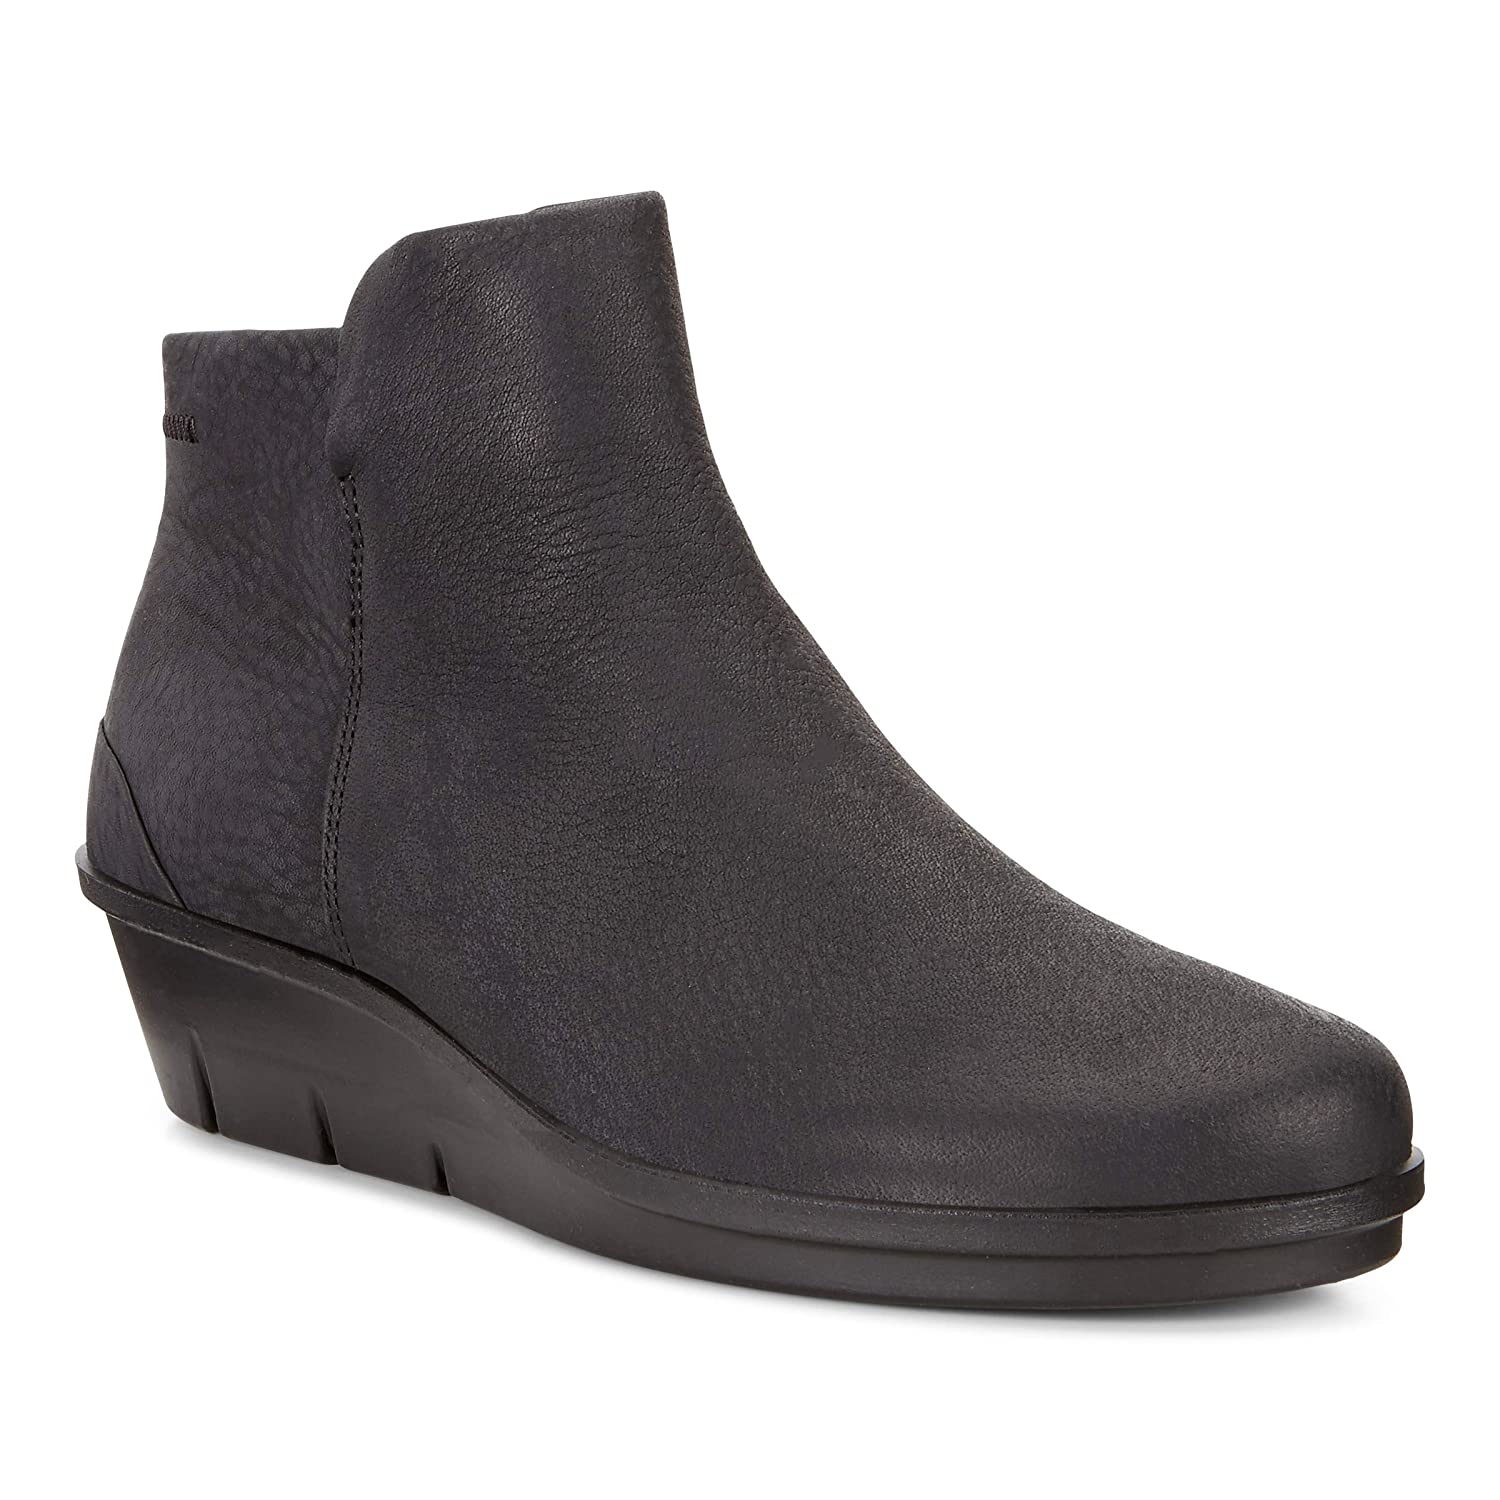 45a49479938 ECCO Womens Skyler Short Boot Ankle Boot